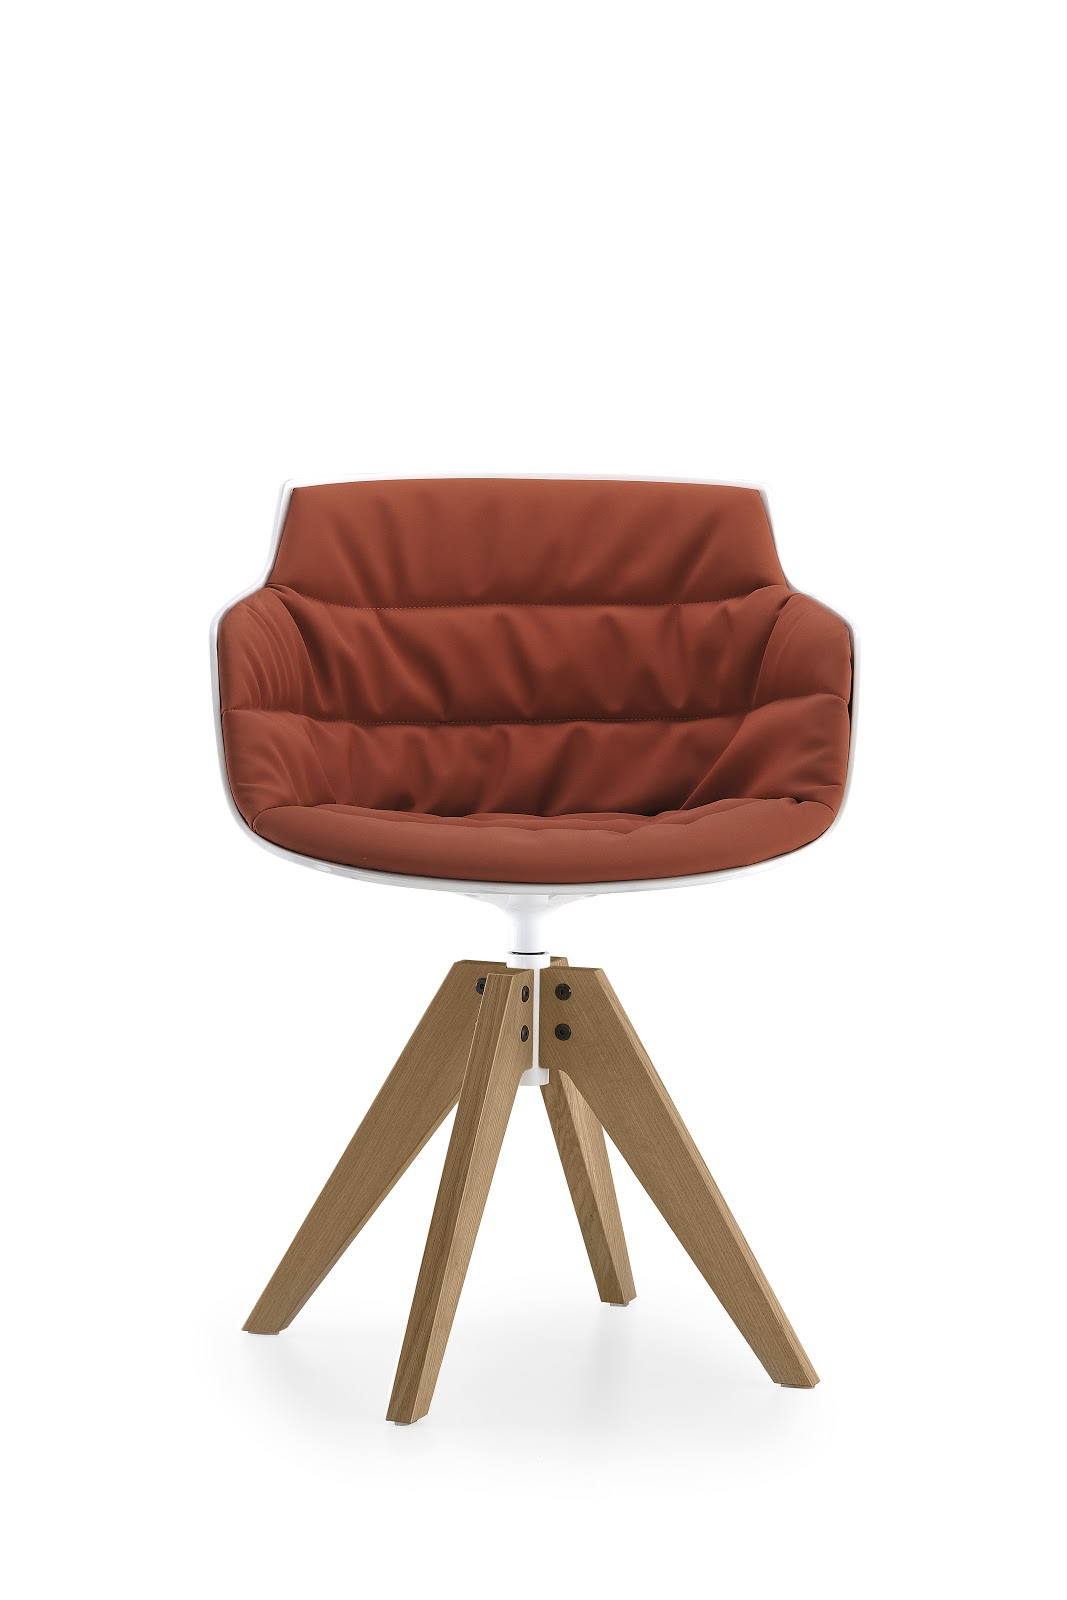 Mdf italia randomito mamba light flow slim armchair for Mdfitalia it